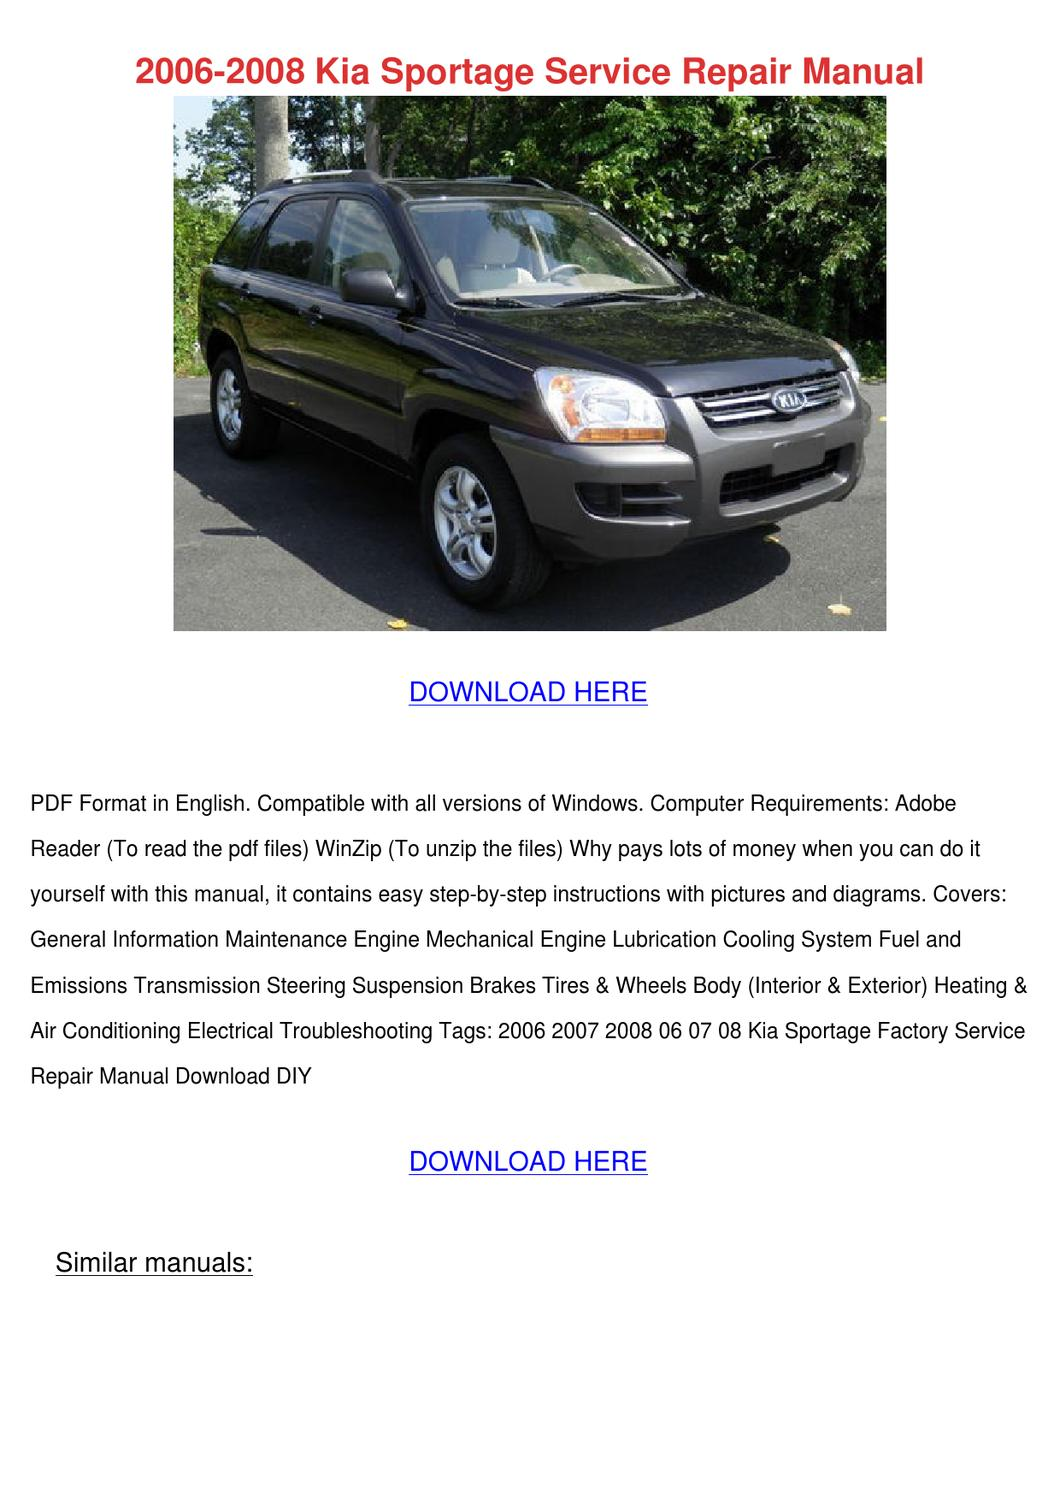 2006 2008 Kia Sportage Service Repair Manual By Doris L